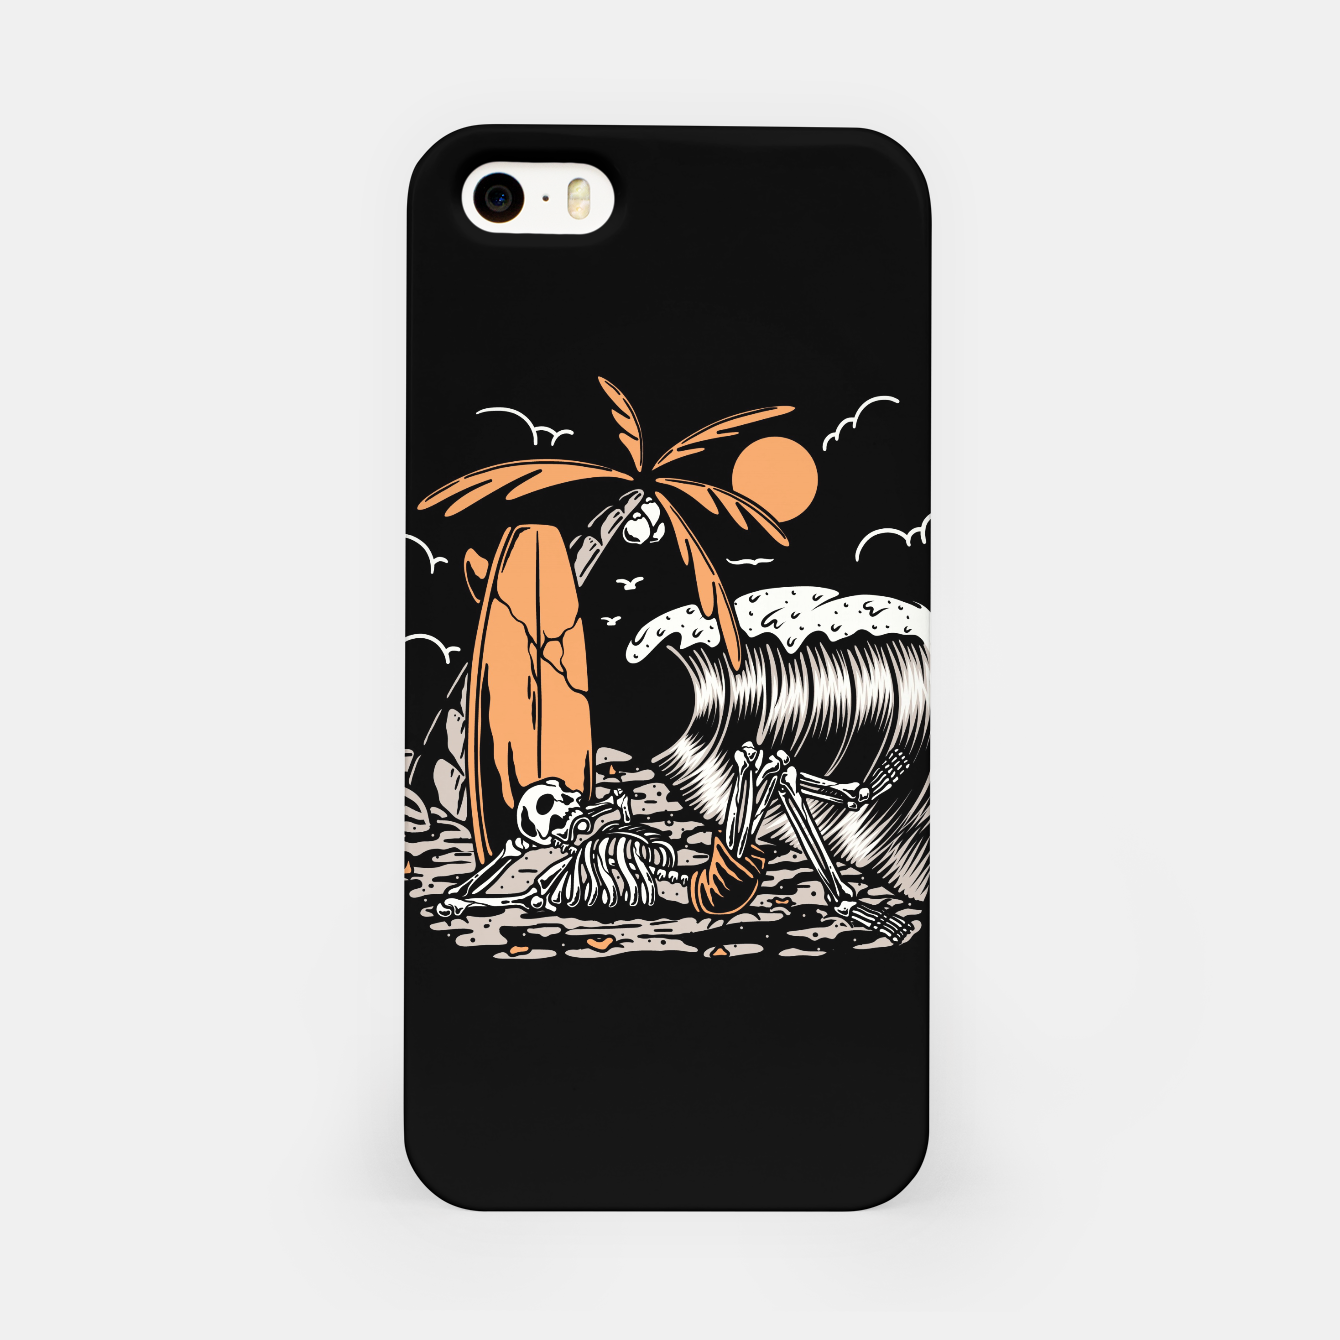 Foto Relax iPhone Case - Live Heroes